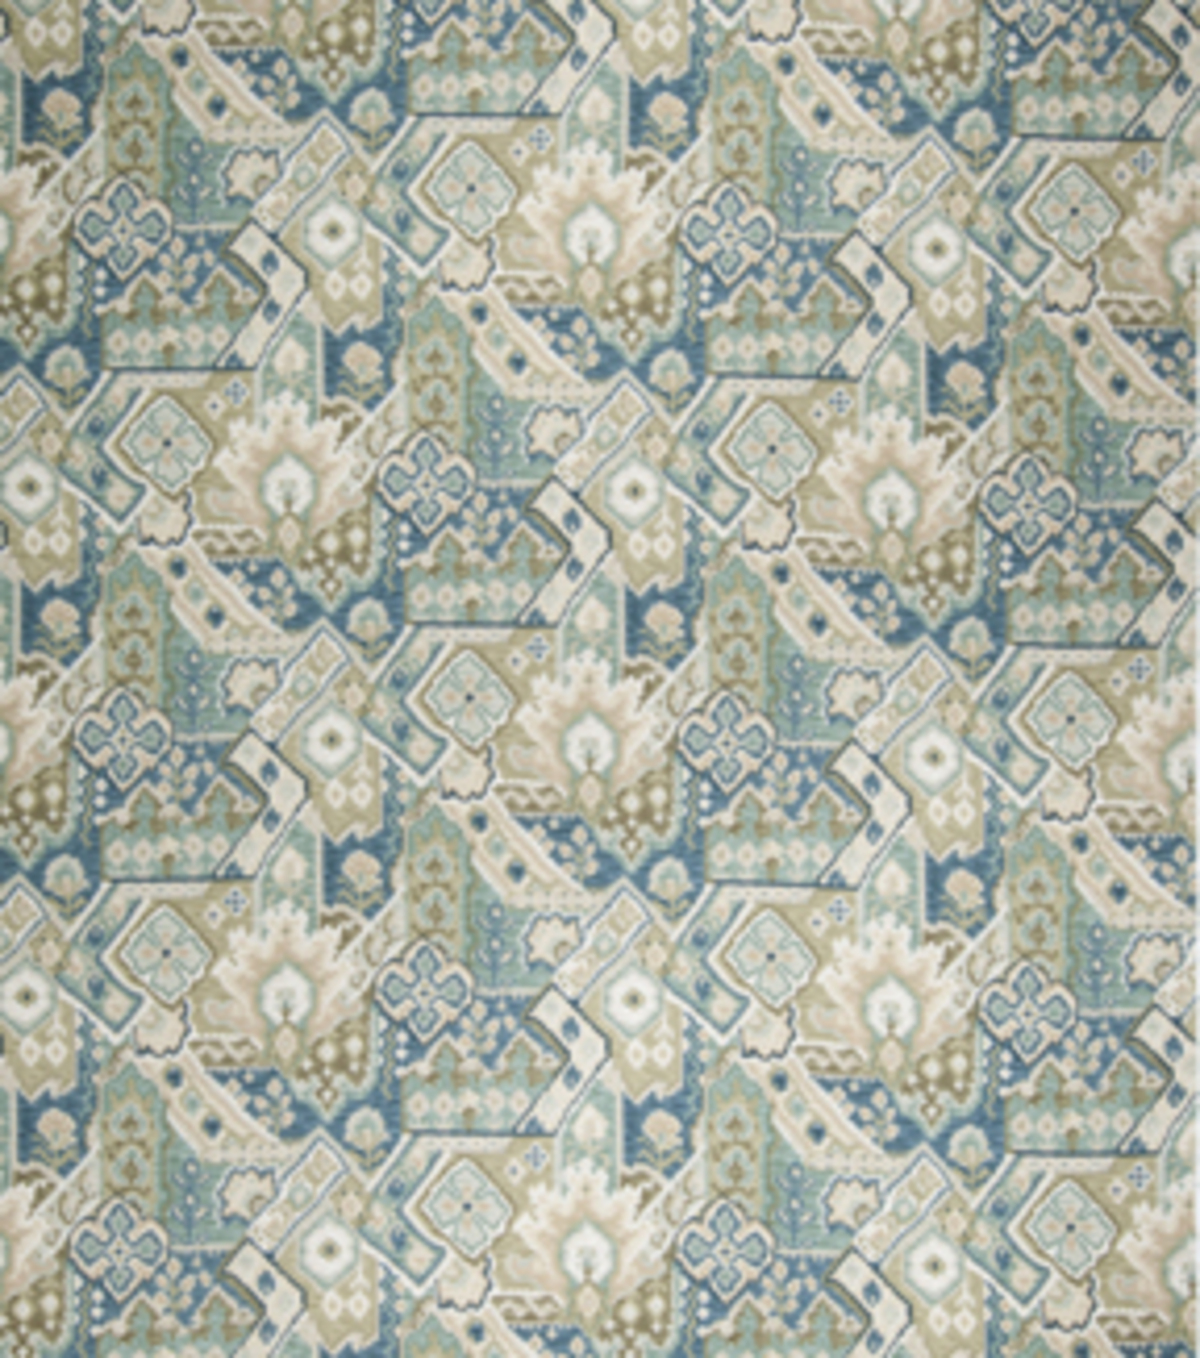 Home Decor 8\u0022x8\u0022 Fabric Swatch-SMC Designs Mozart Rainforest